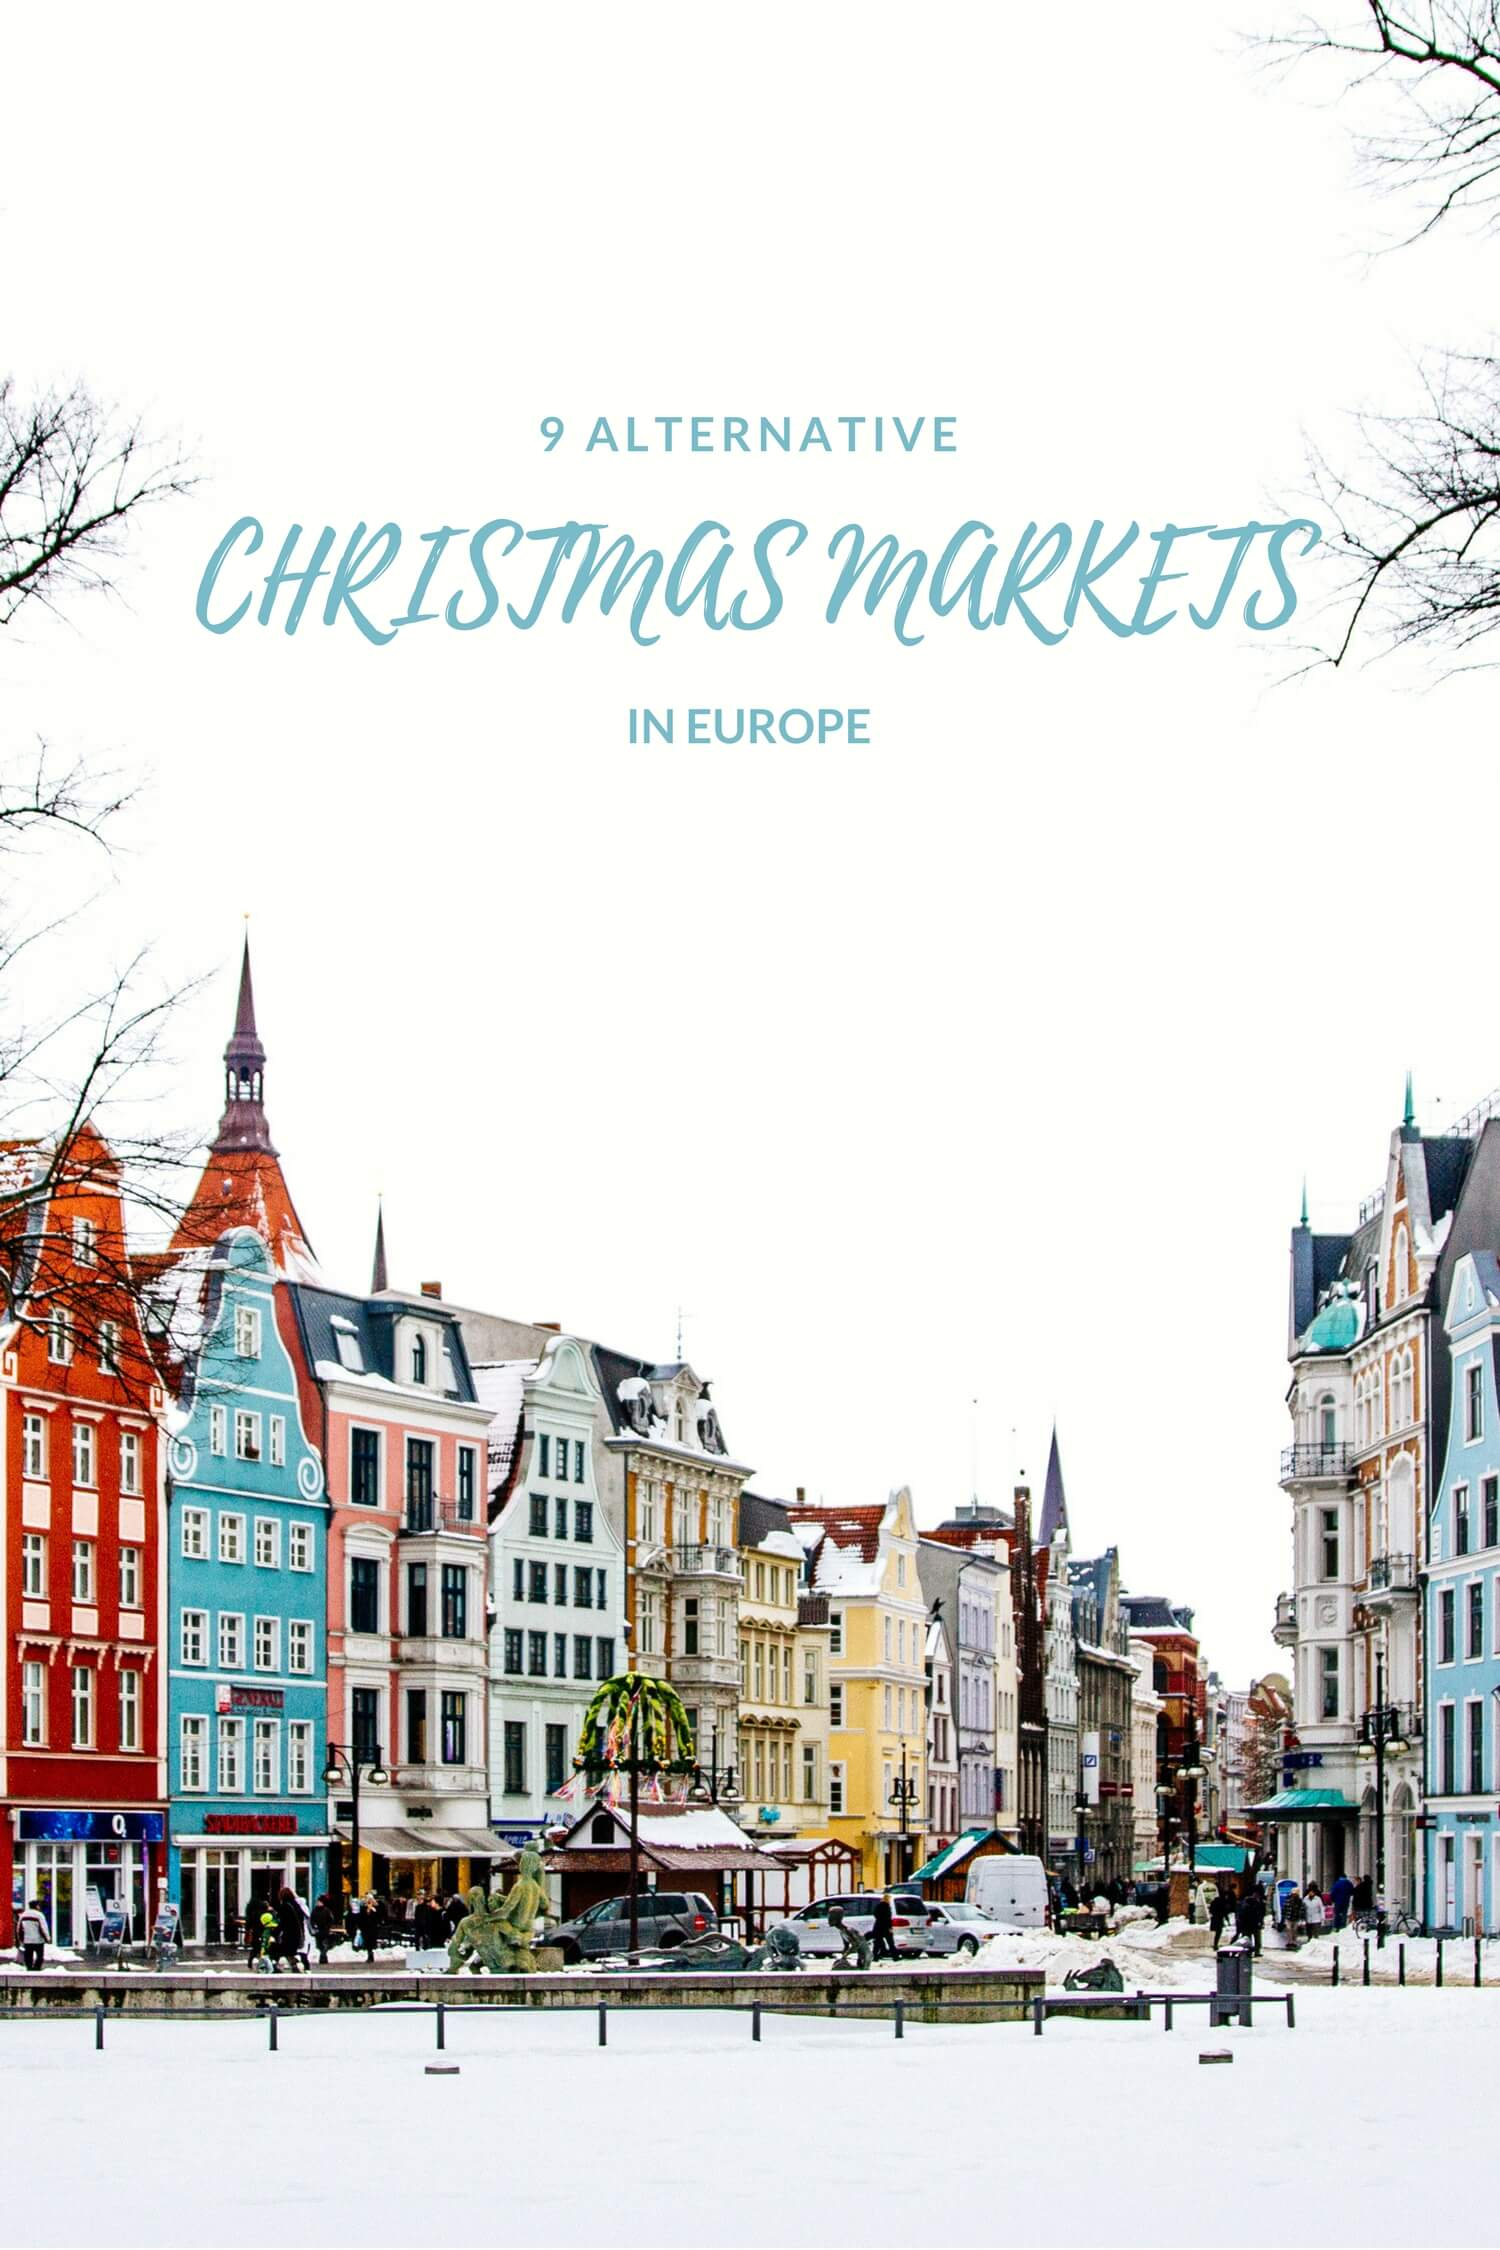 Alternative Christmas Markets in Europe